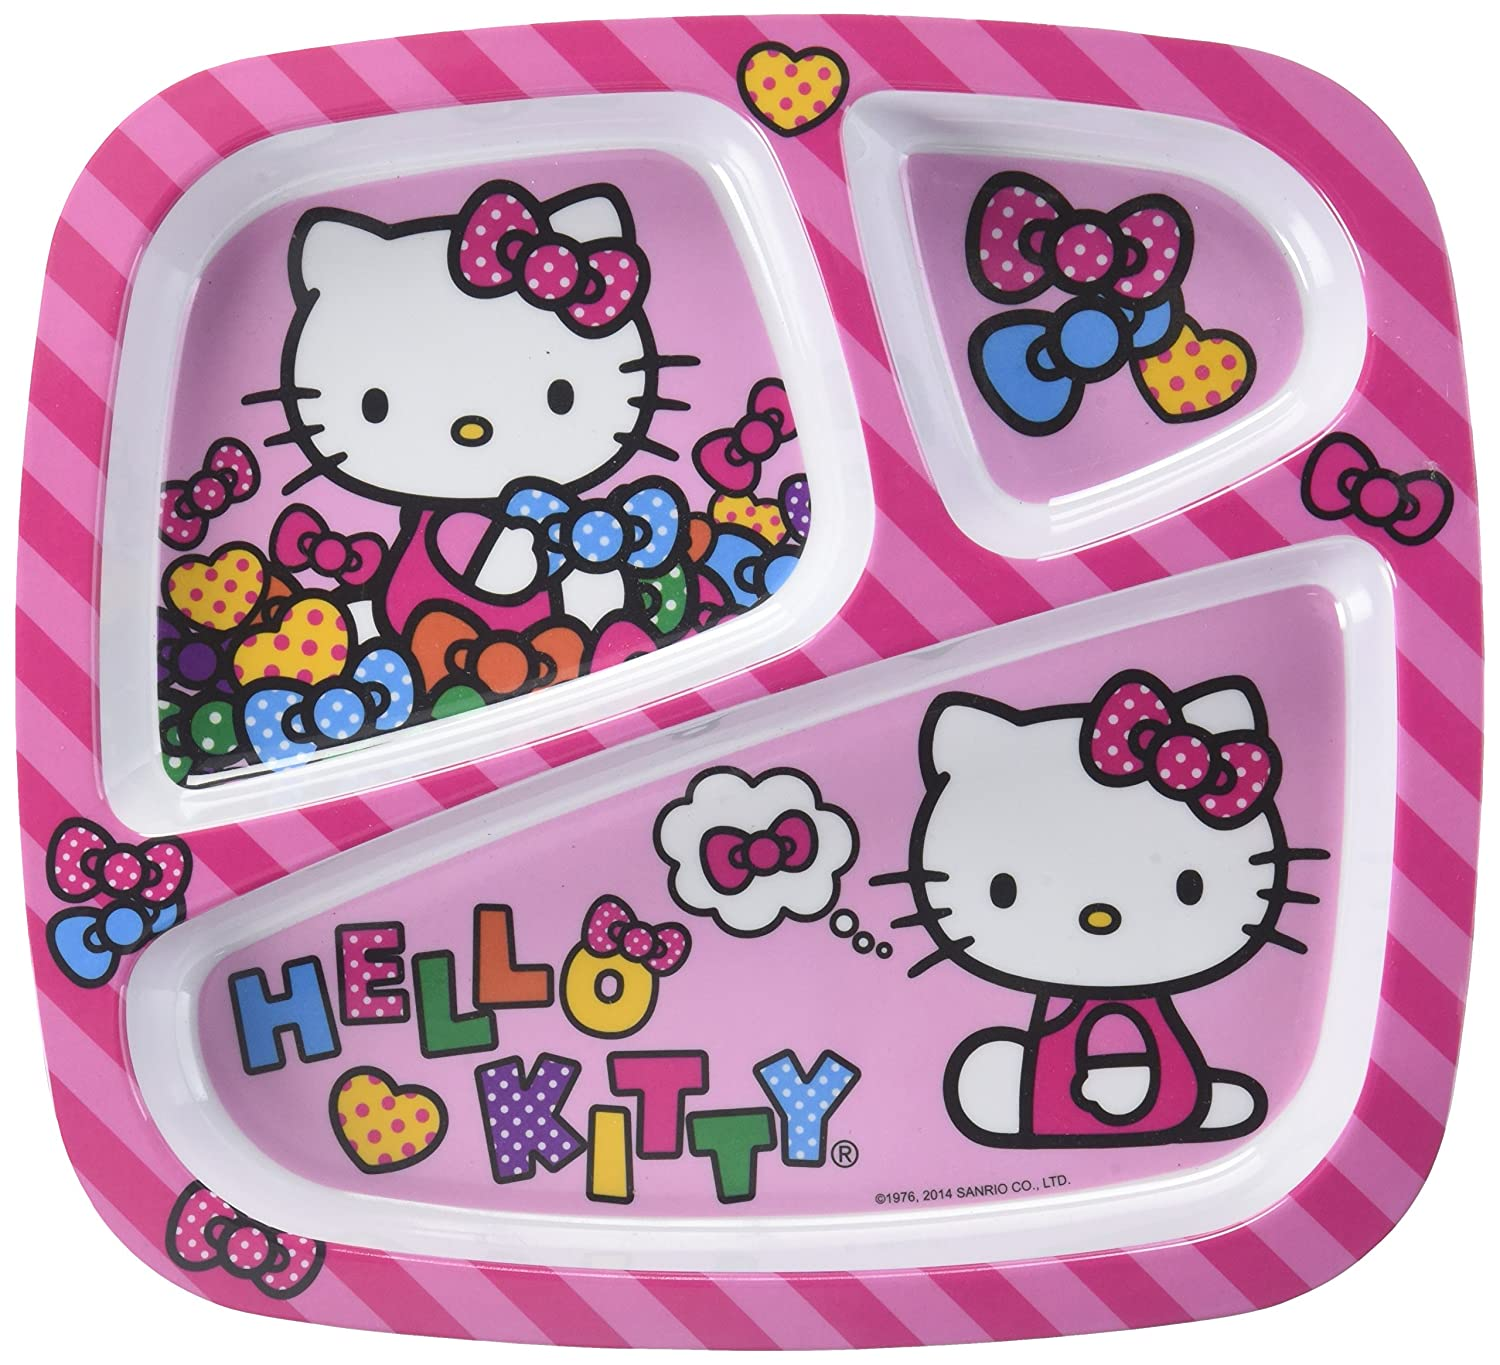 【返品?交換対象商品】 Zak! by BPA Zak! Free Hello Kitty Meal Tray B005HF33HU (Discontinued by Manufacturer) by Zak Designs B005HF33HU, HEAVEN Japan:ed81f5d1 --- a0267596.xsph.ru